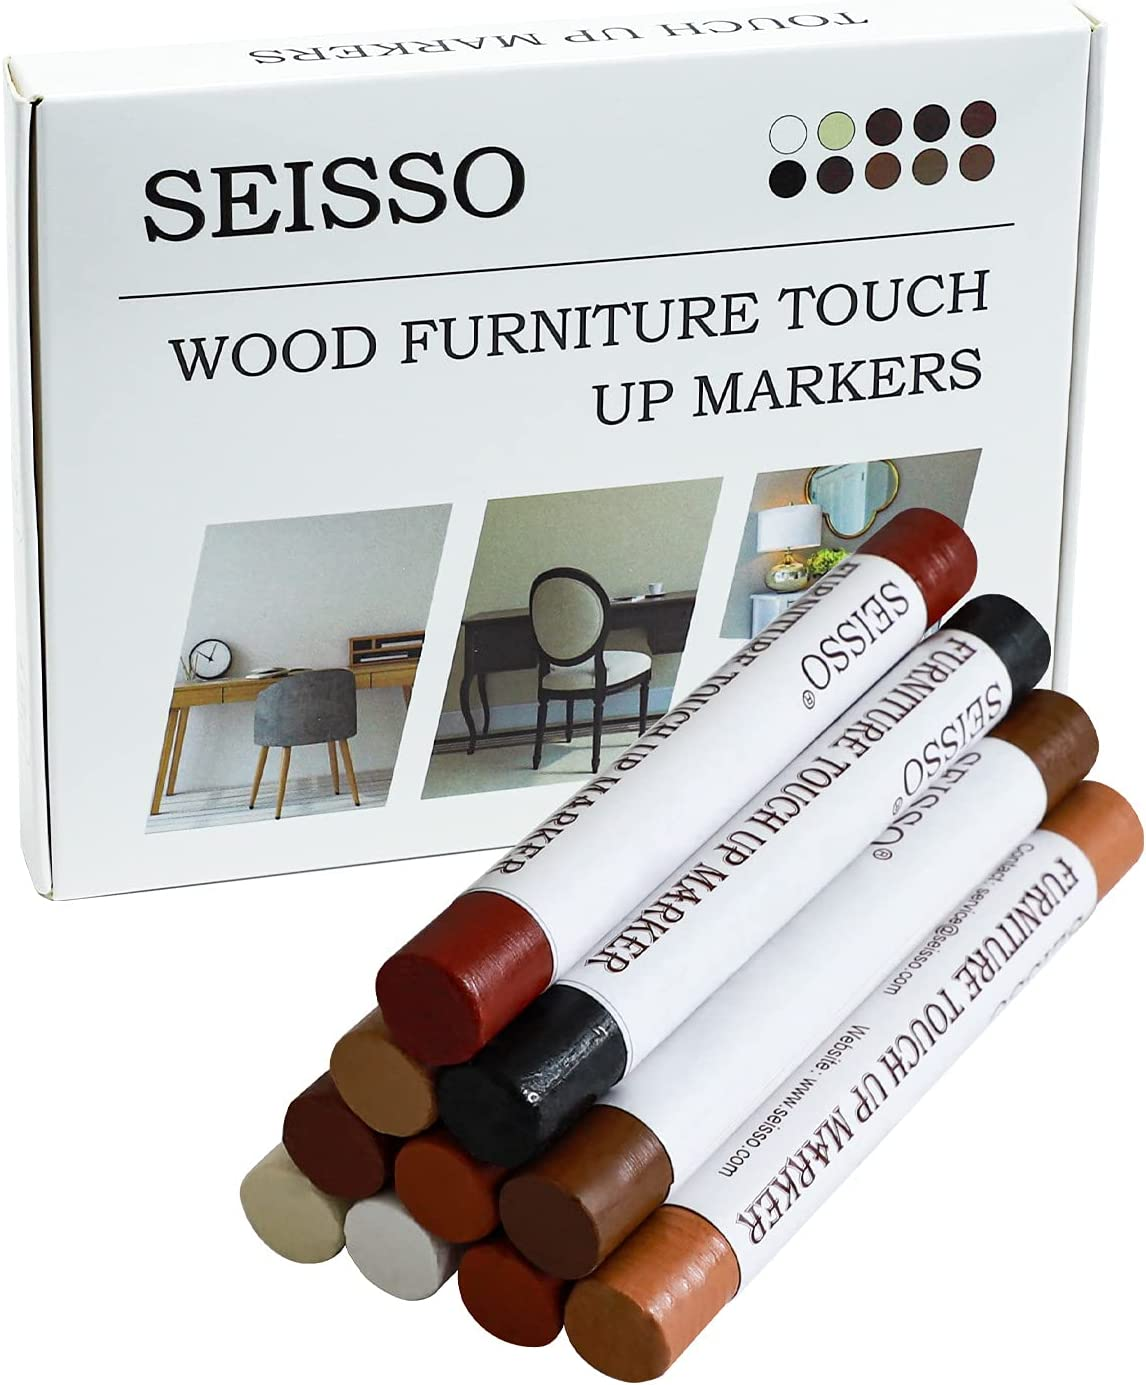 SEISSO Furniture Repair Wax Crayon Max 68% OFF P Colors Kit 10 Selling and selling Wood